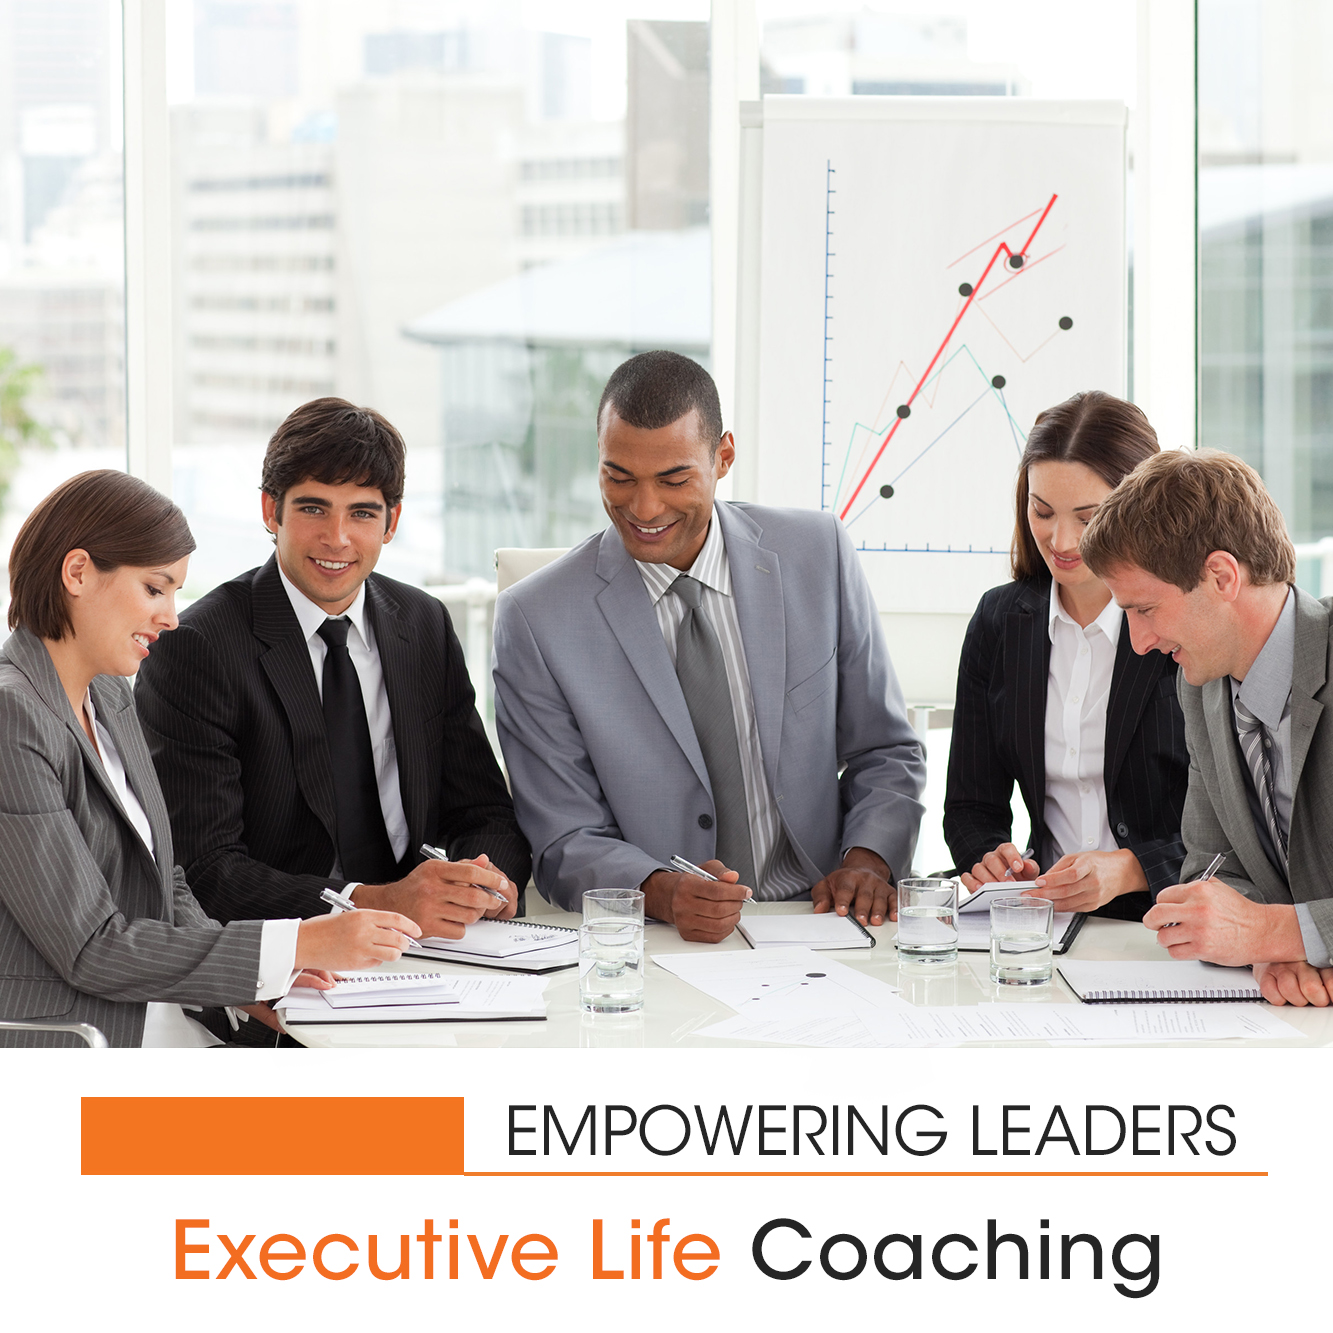 Executive Life Coaching – Executive Life Coaching